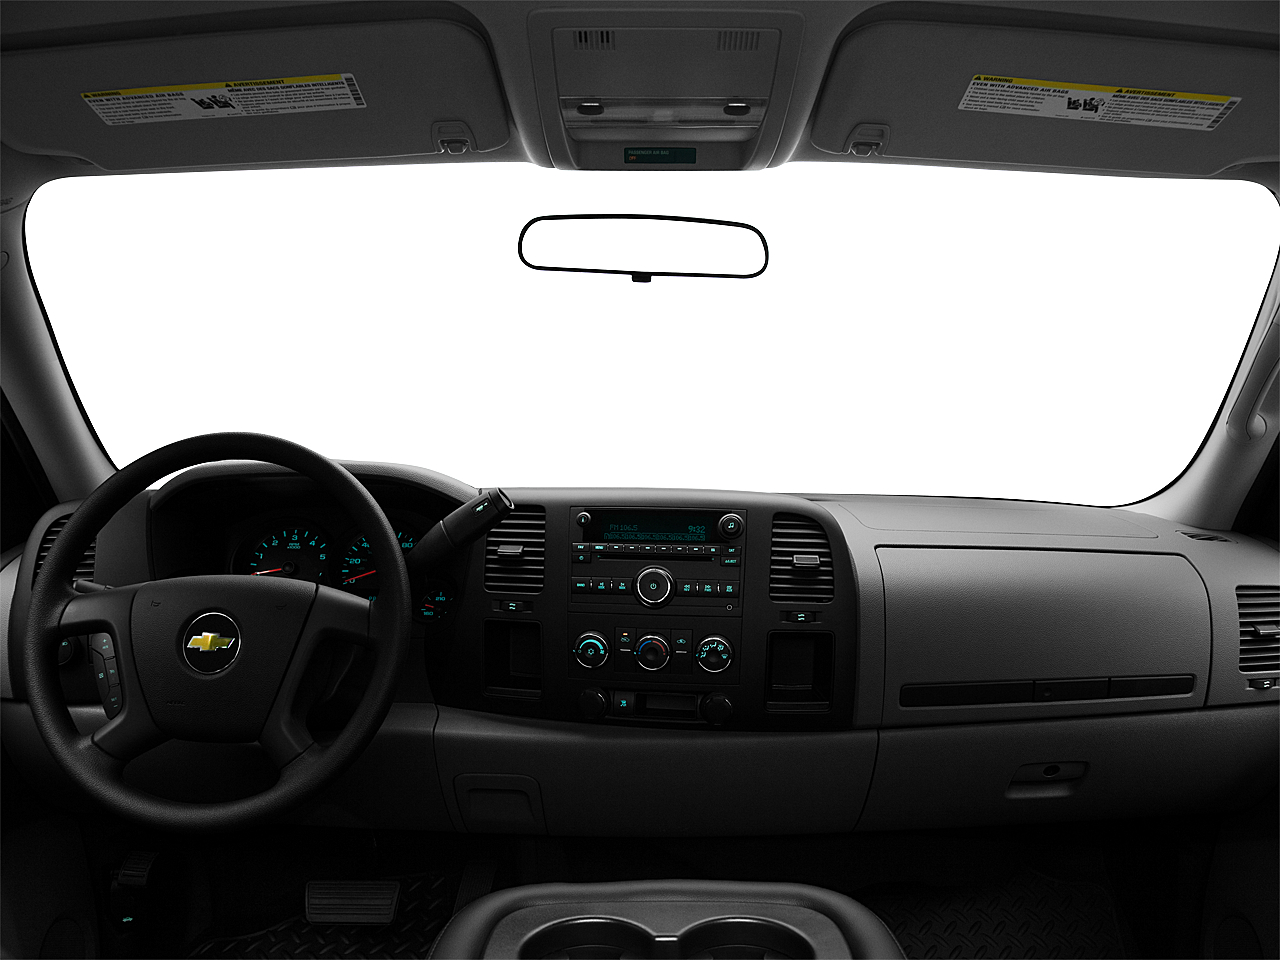 2011 Chevrolet Silverado 1500 WT, centered wide dash shot